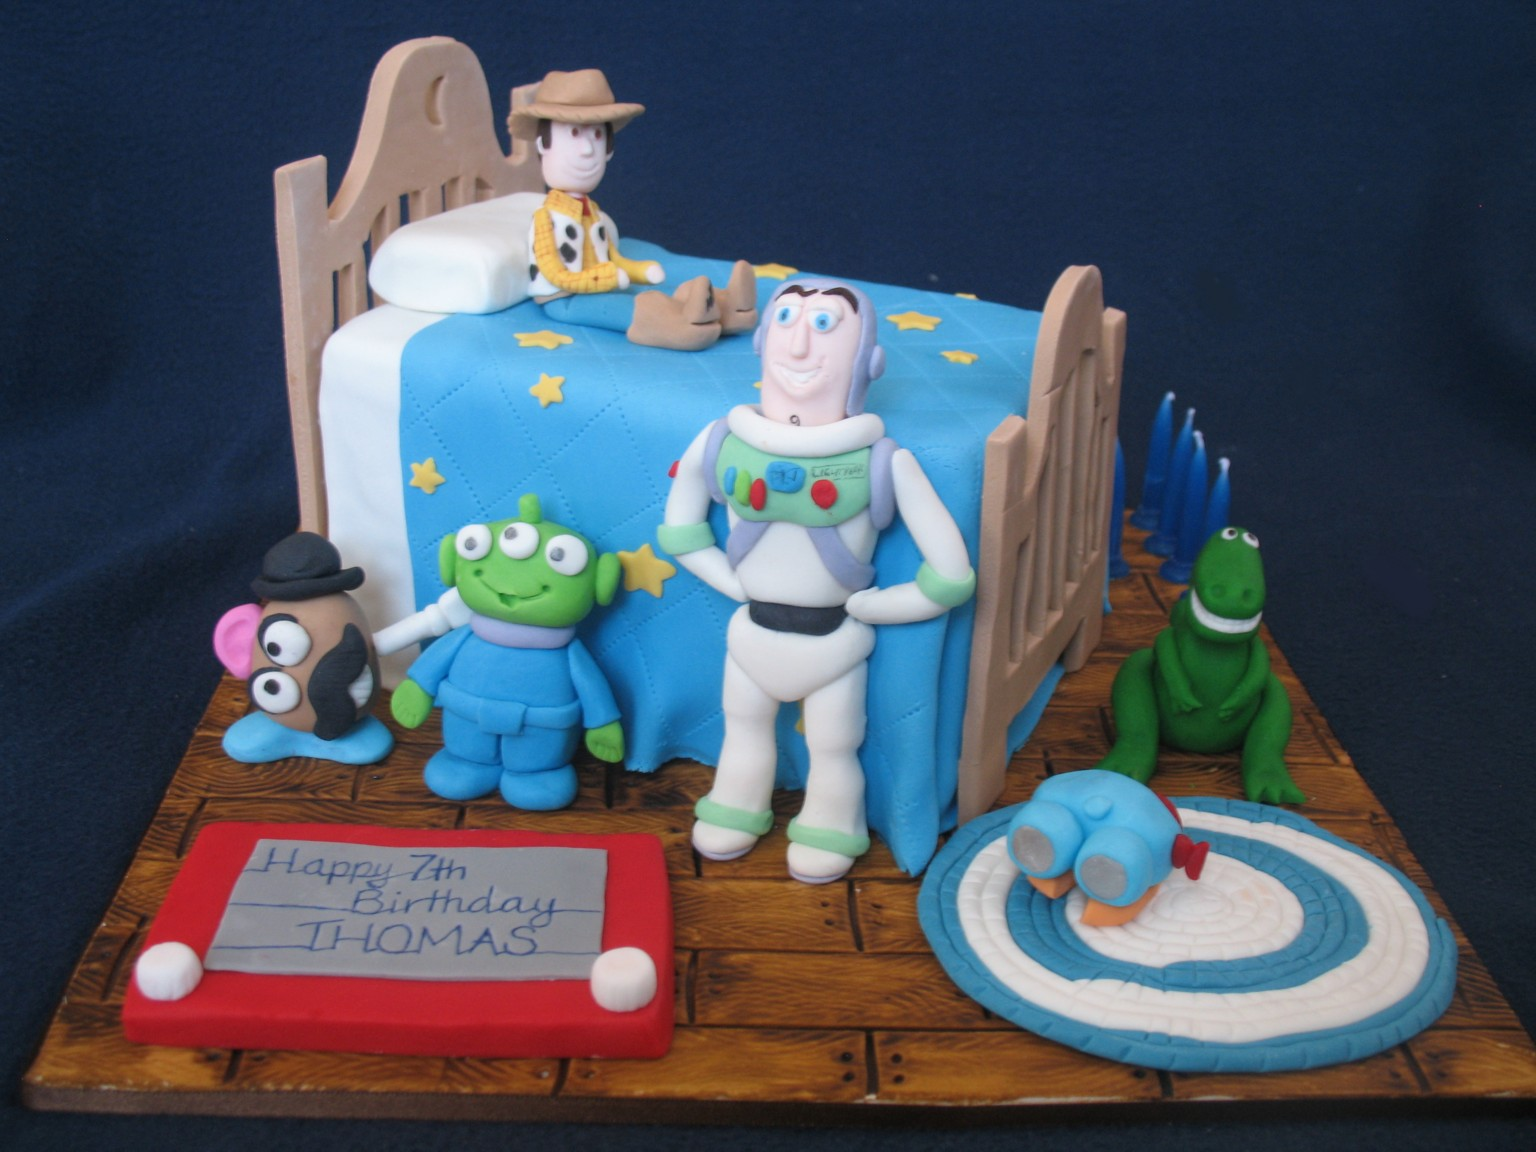 Blissfully Sweet: A Toy Story of a Birthday Cake